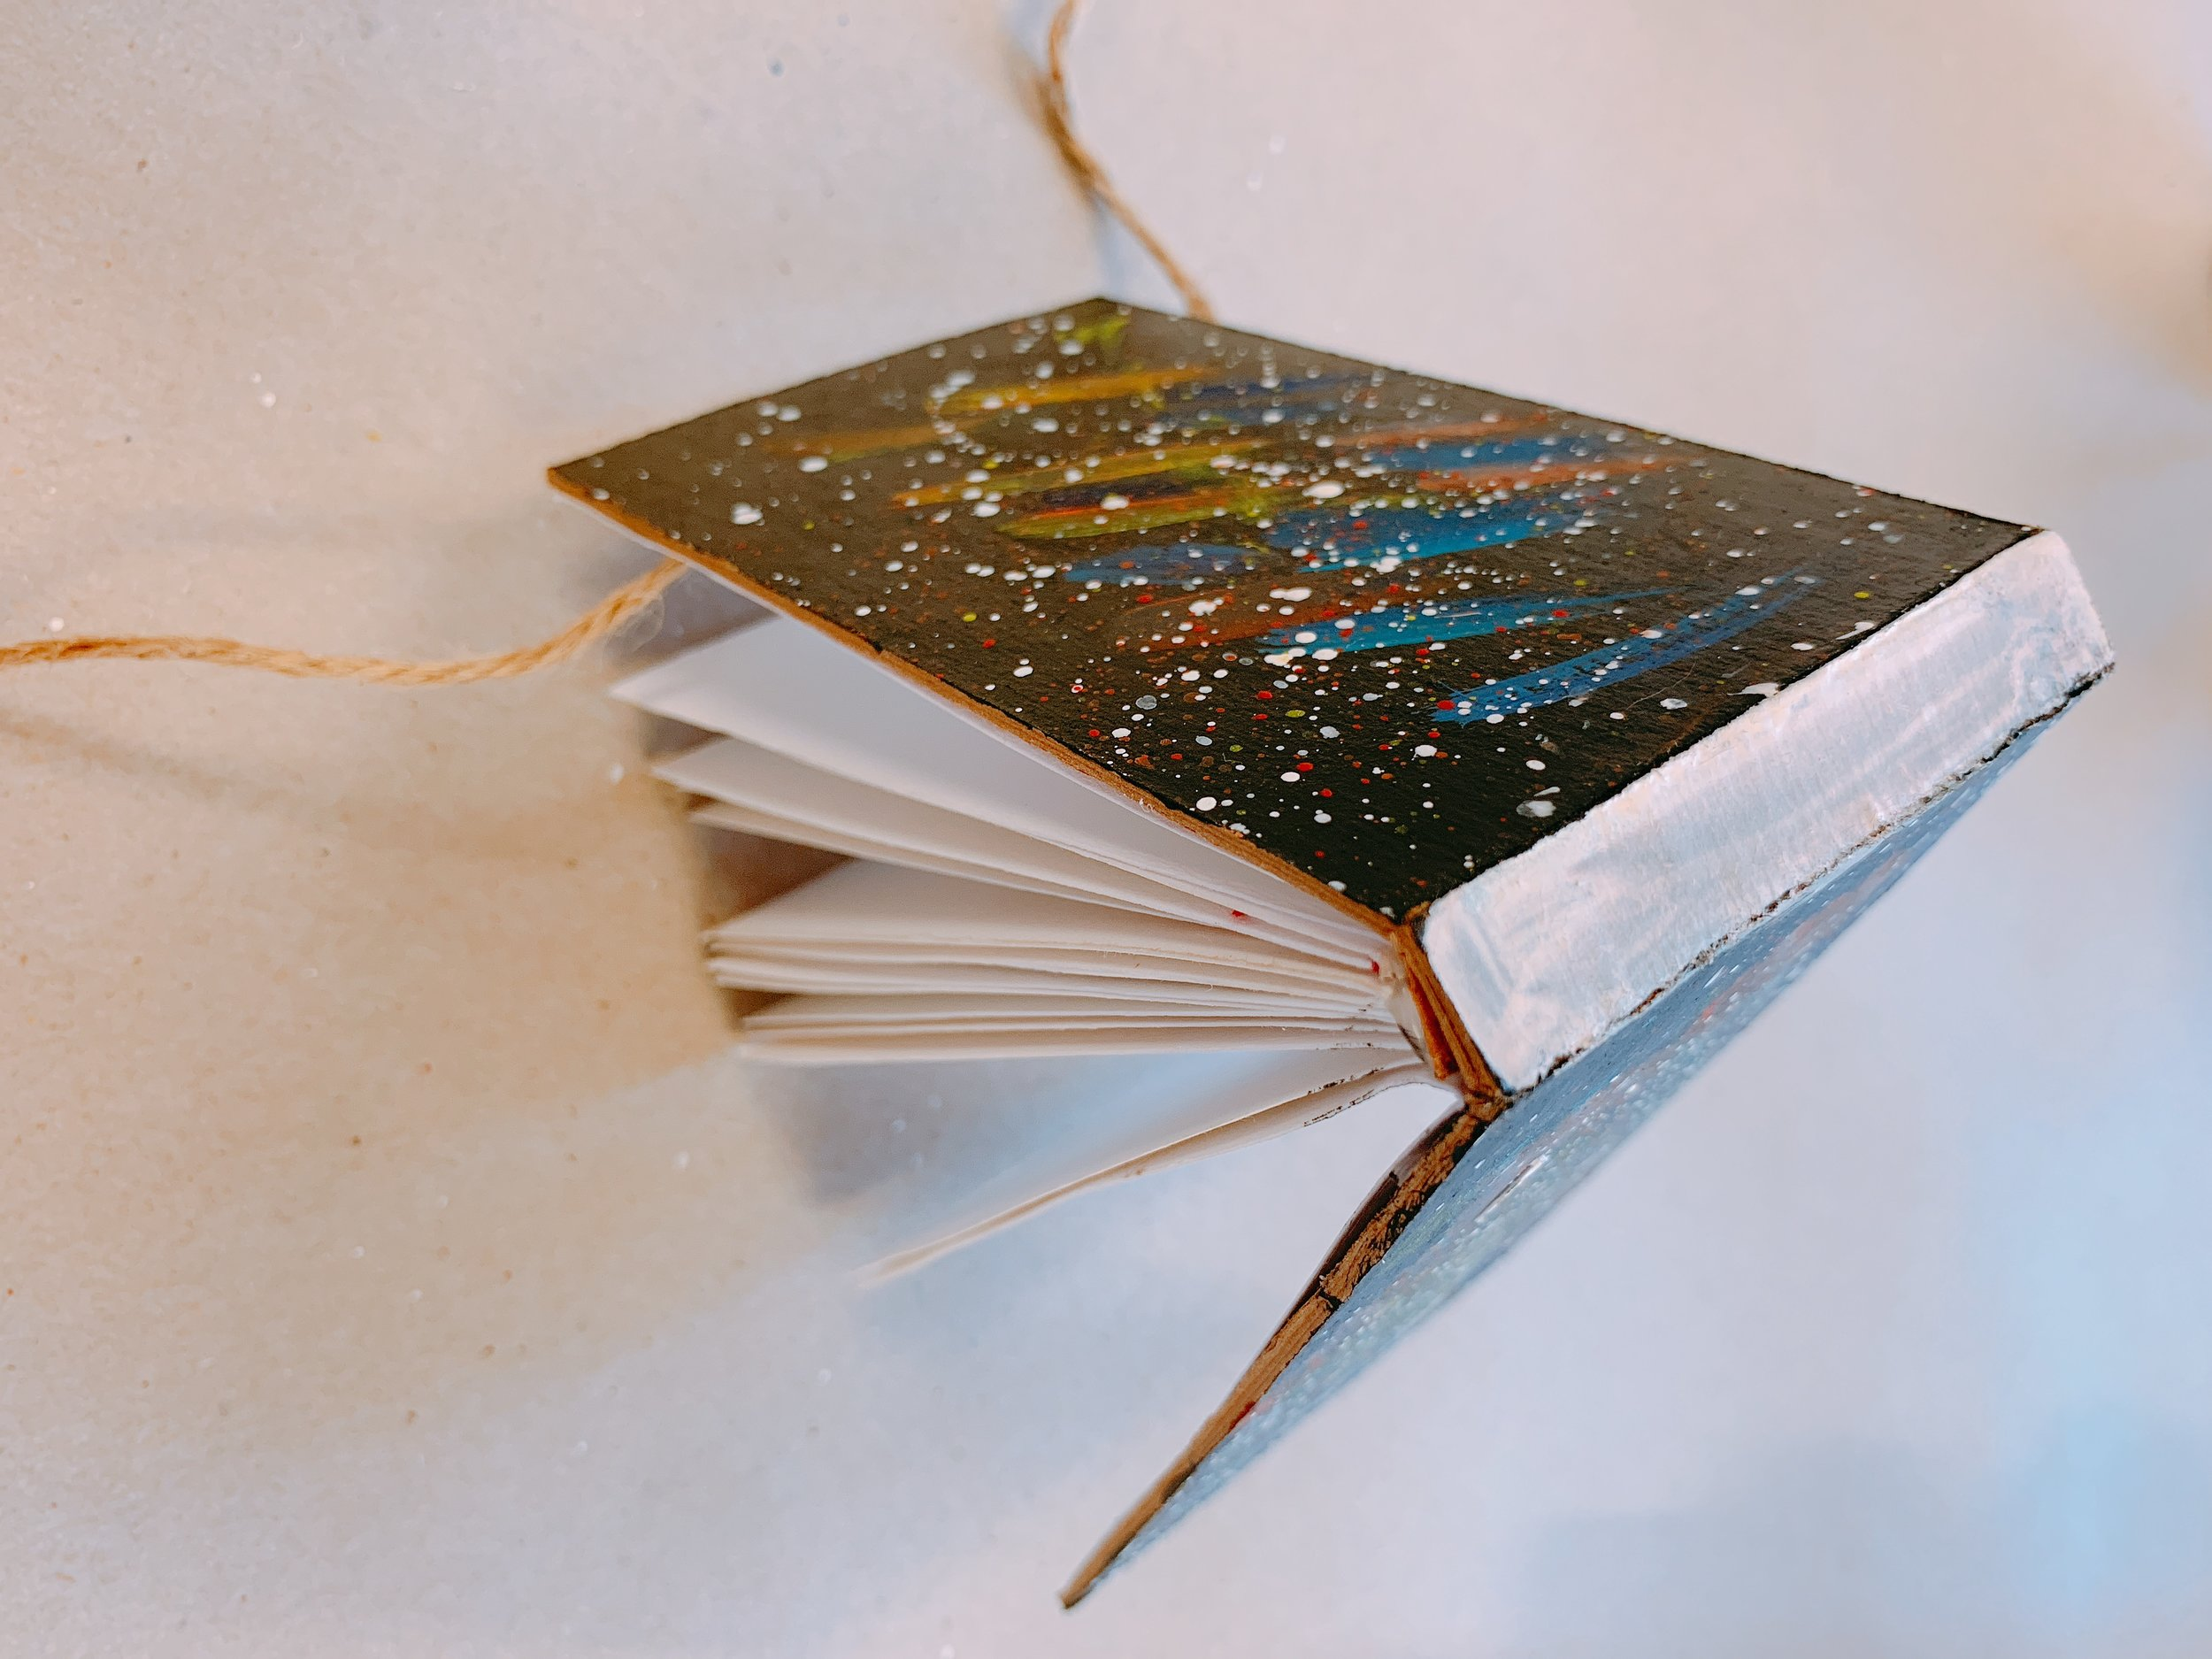 BOOK BINDING/ ILLUSTRATION CLASS - Students will illustrate their own books in this class and also learn how to kettle stitch bind their books and design their own art notebooks